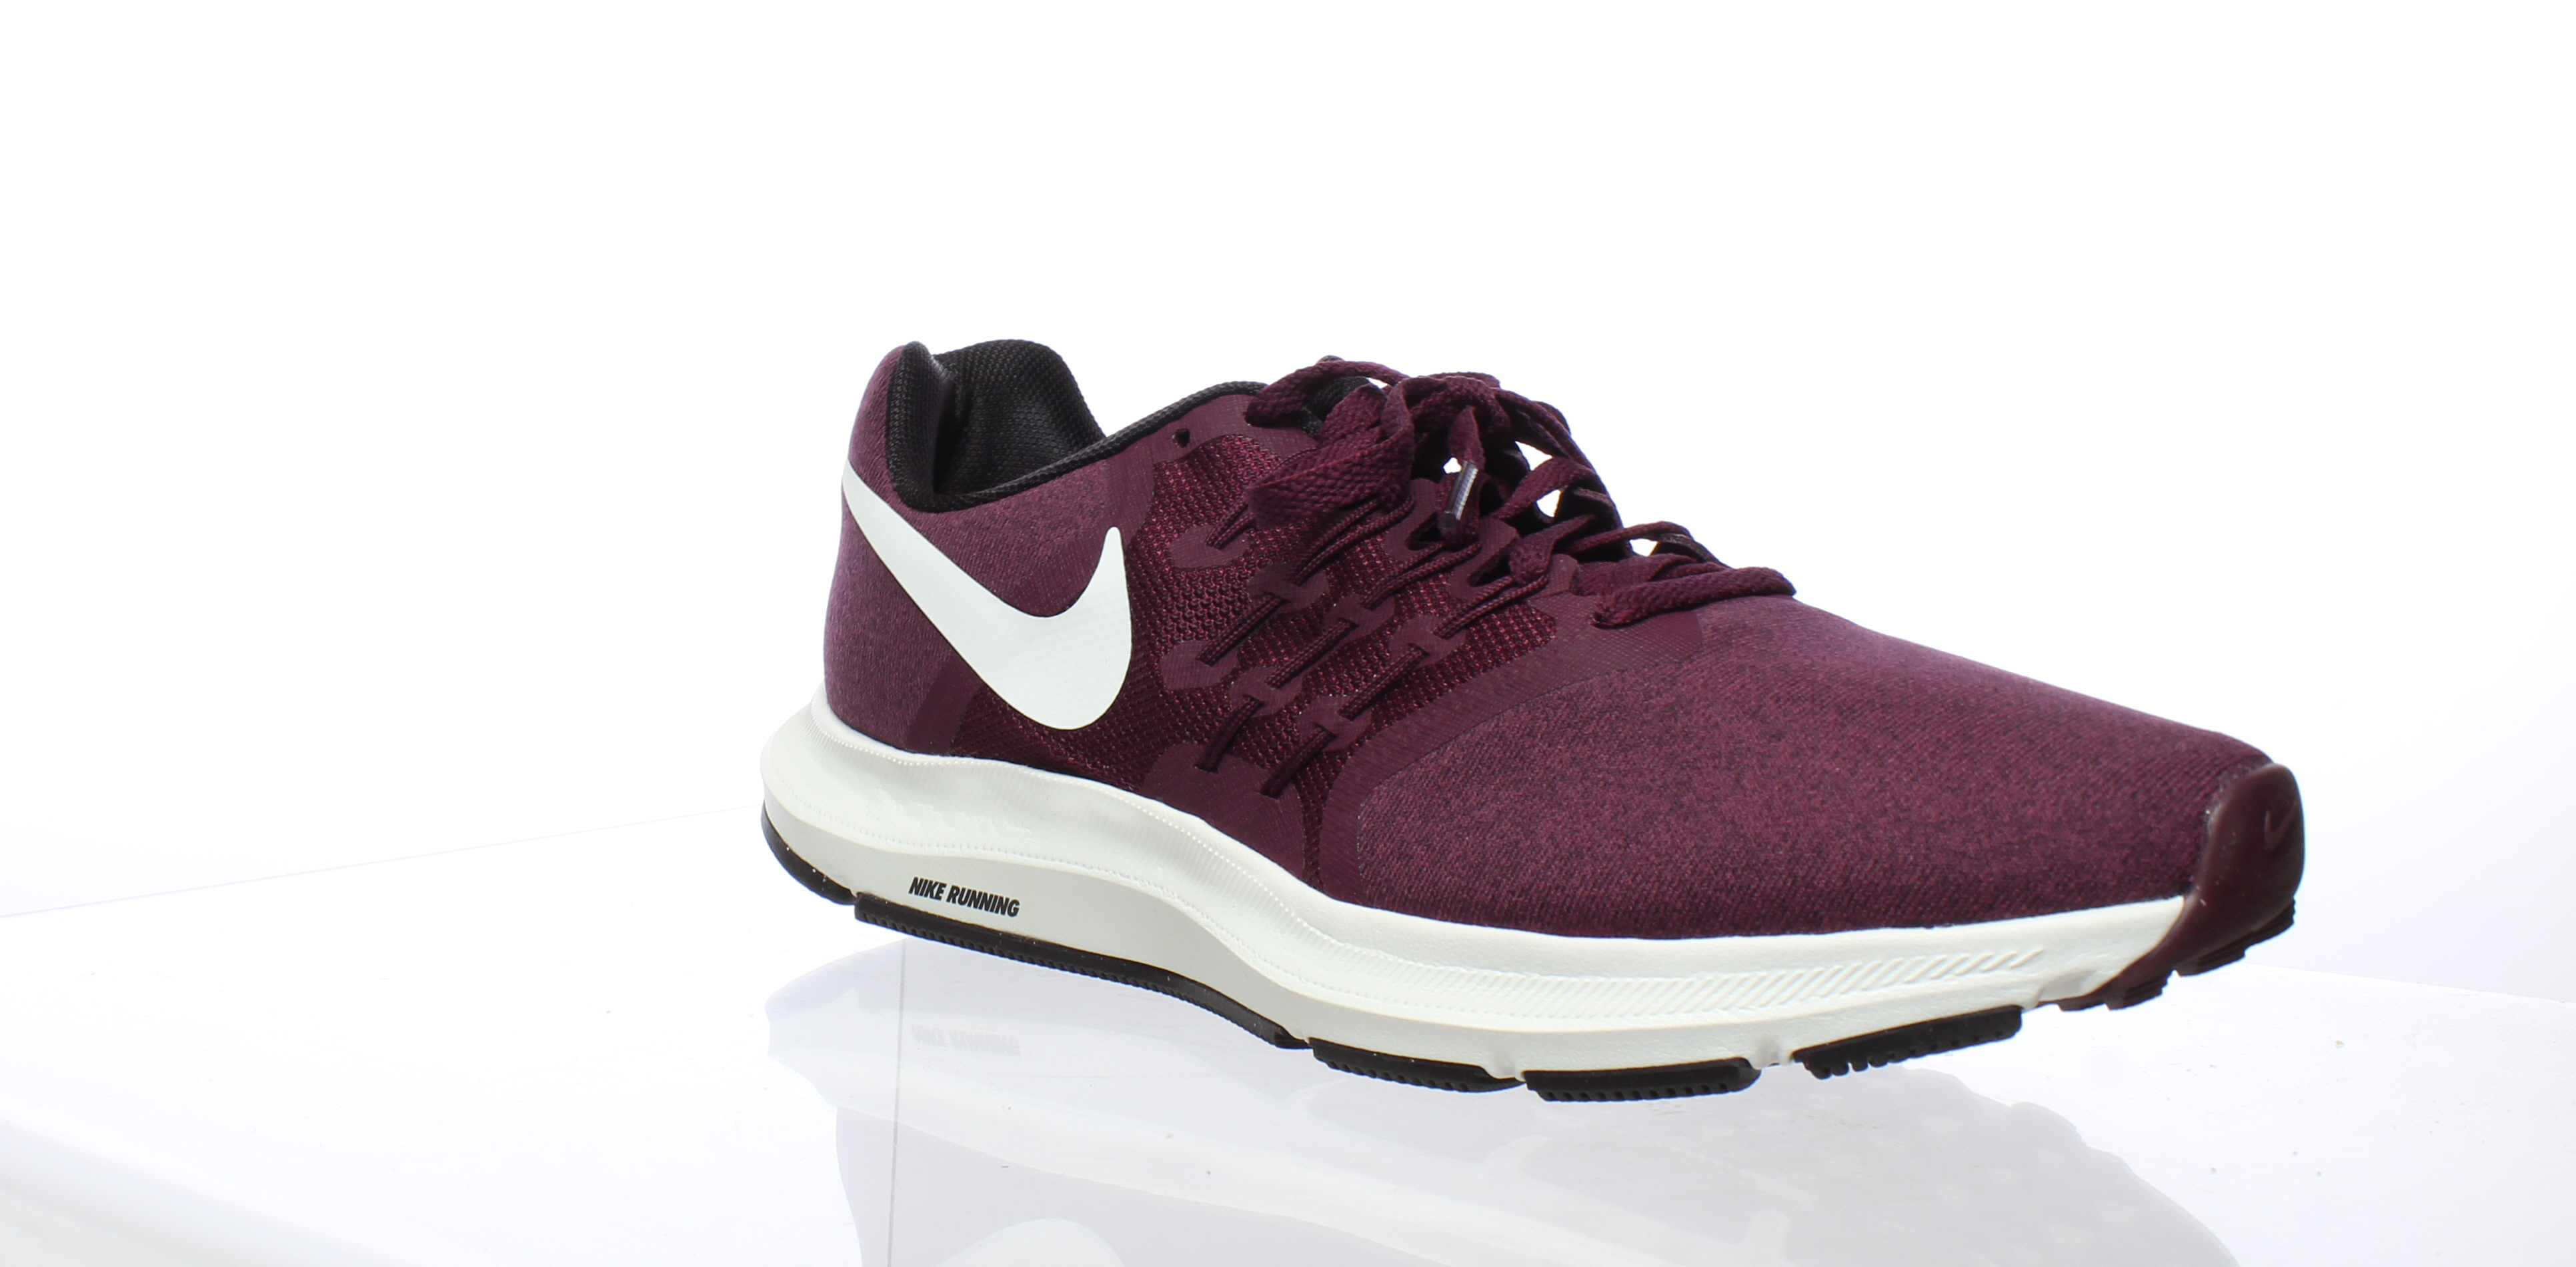 53a93a4138e Details about Nike Womens Run Swift Bordeaux/Summit White/Burgundy Running  Shoes Size 9